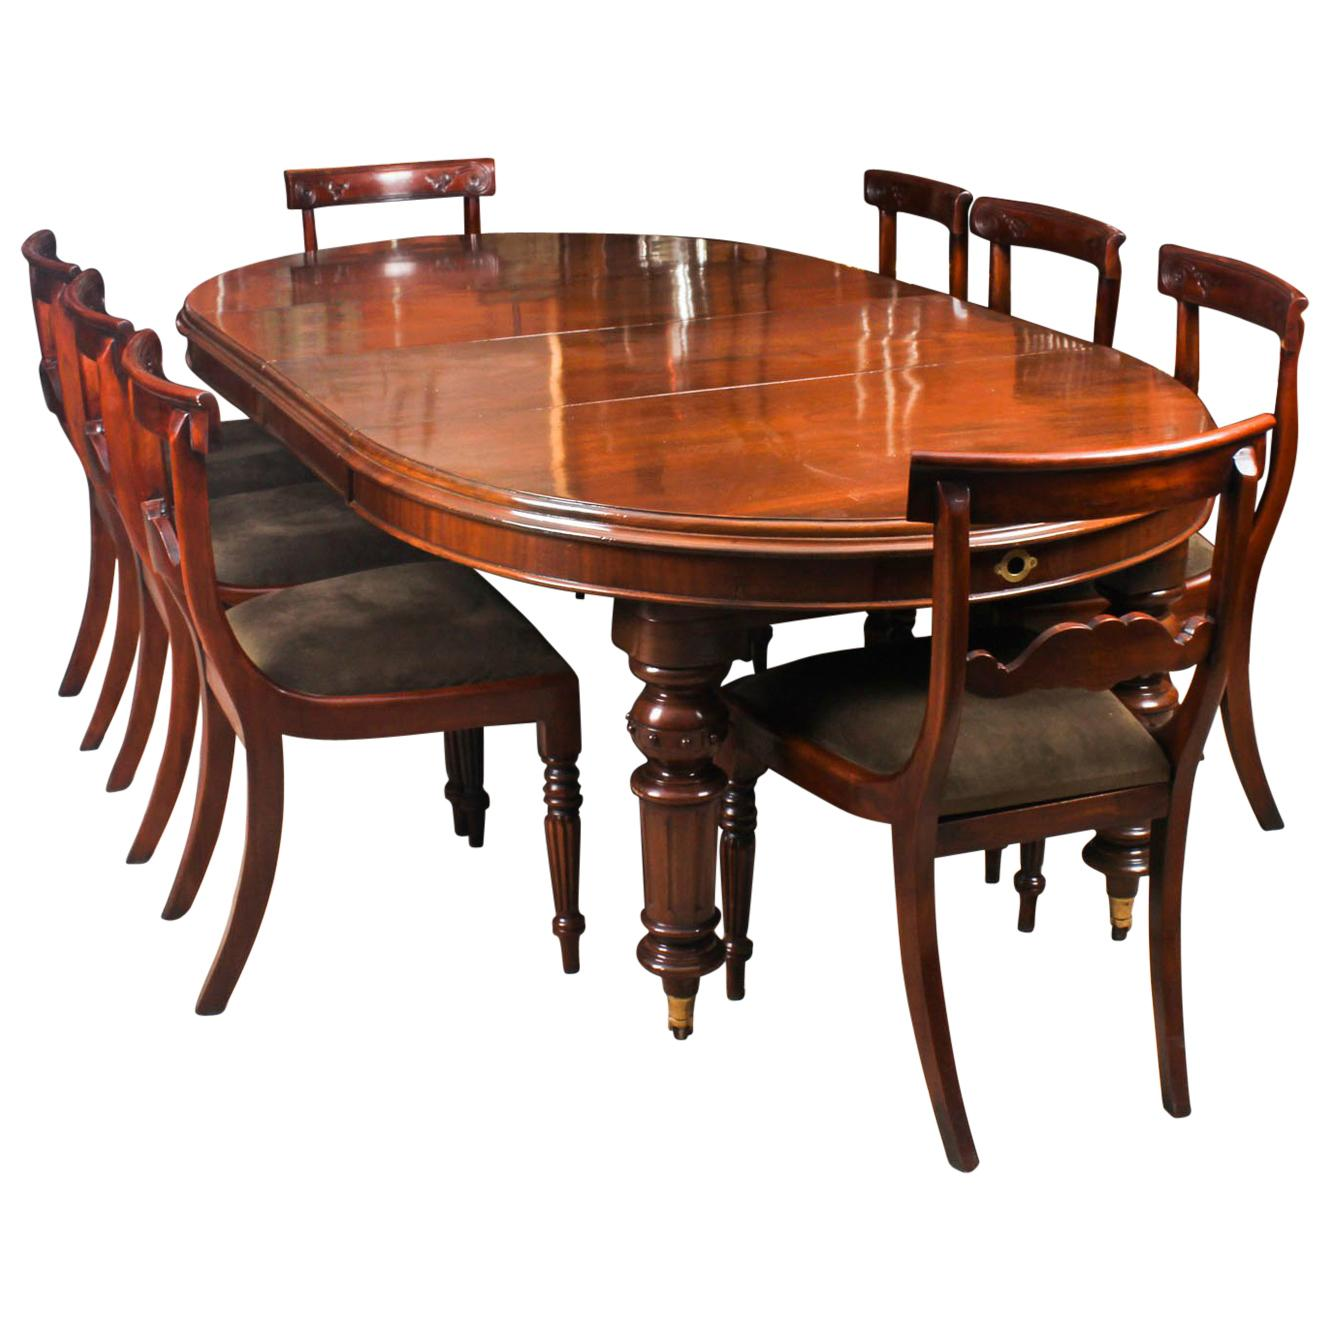 Antique Victorian Oval Dining Table, Oval Dining Room Table